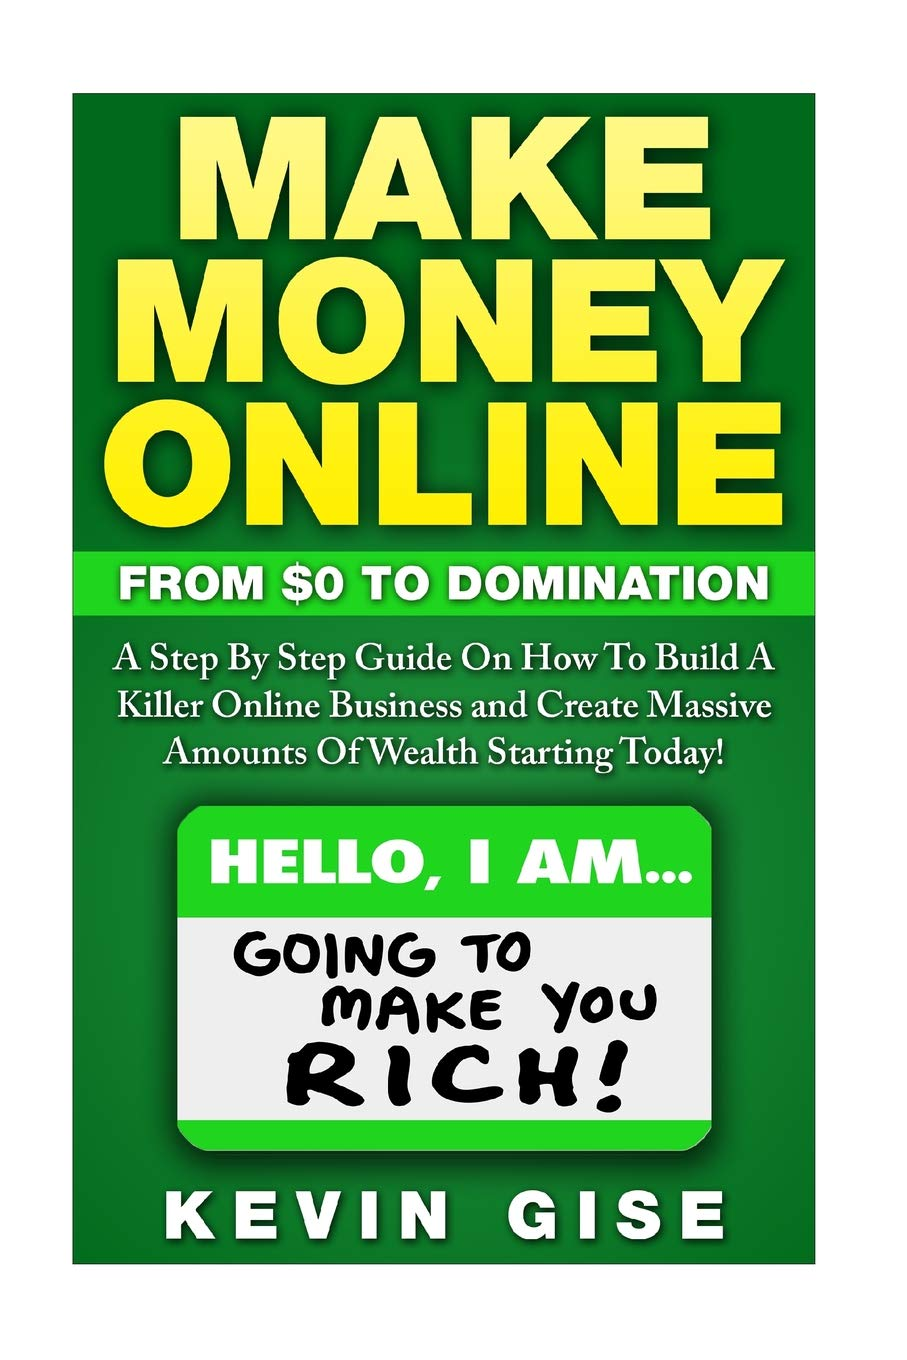 Home Based Lead Business For Sale Earn Money From Amazon Online Jobs